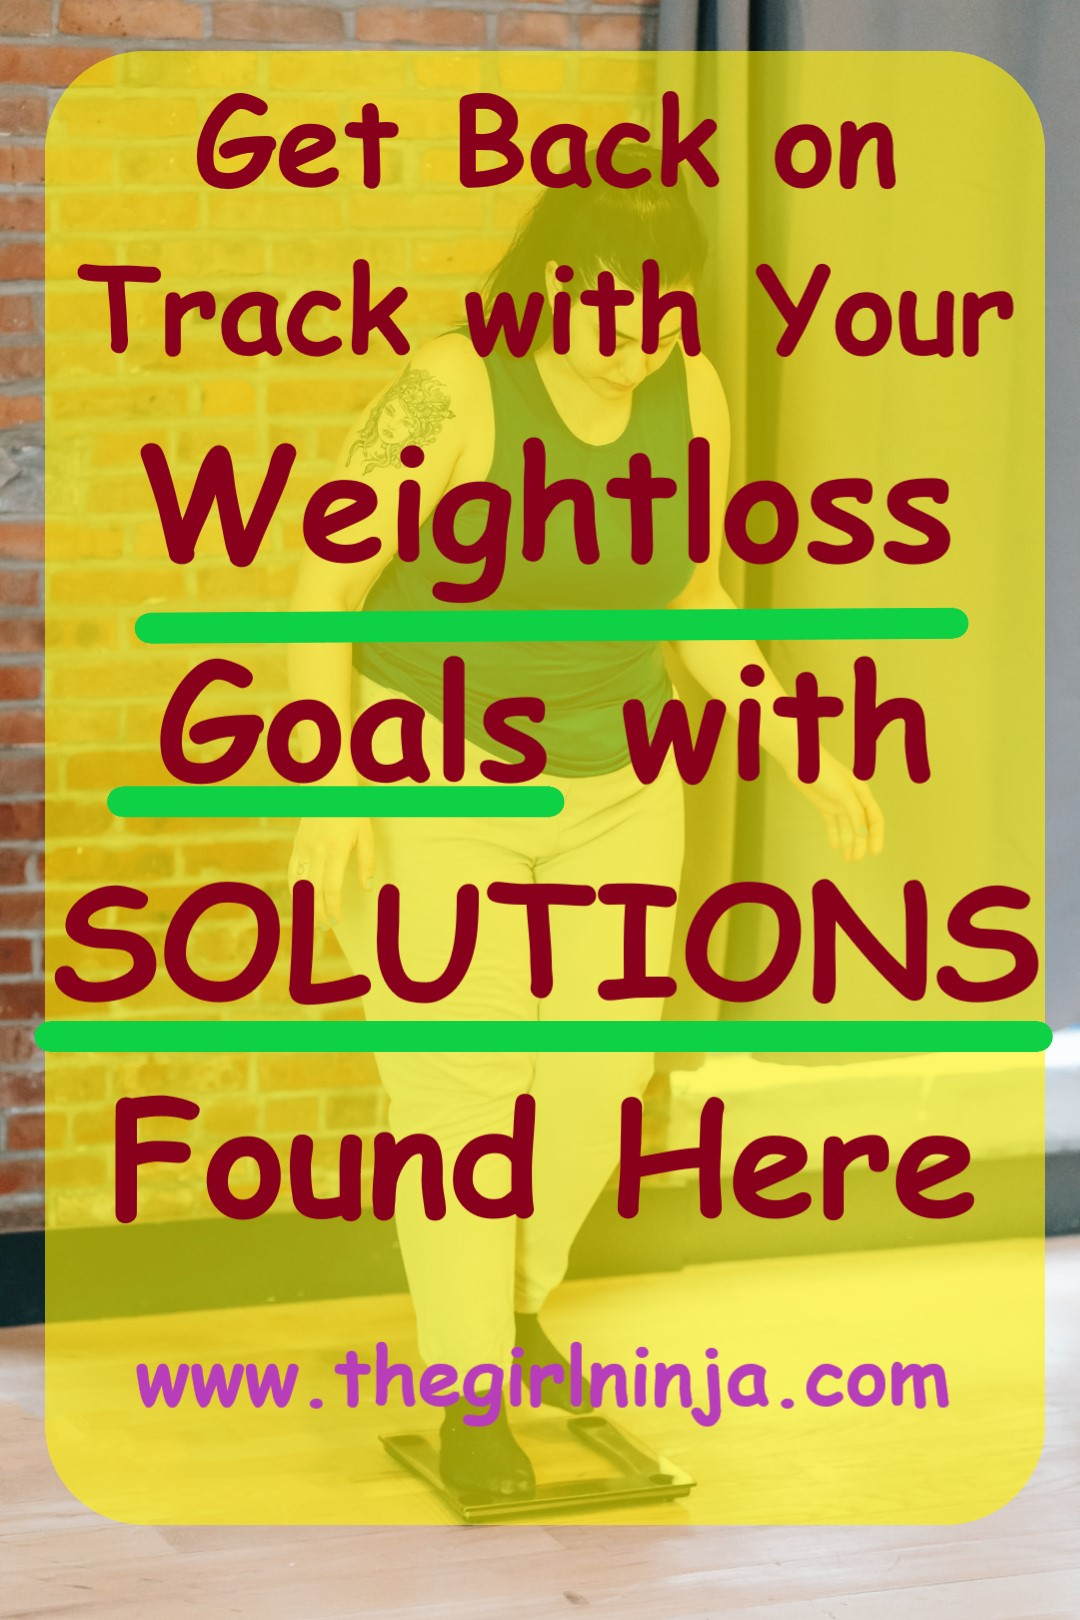 Woman in workout clothes steps onto scale looking down at it. Over woman a translucent yellow rectangle with red text reads Get Back on Track with Your Weight loss Goals with SOLUTIONS Found Here www.thegirlninja.com